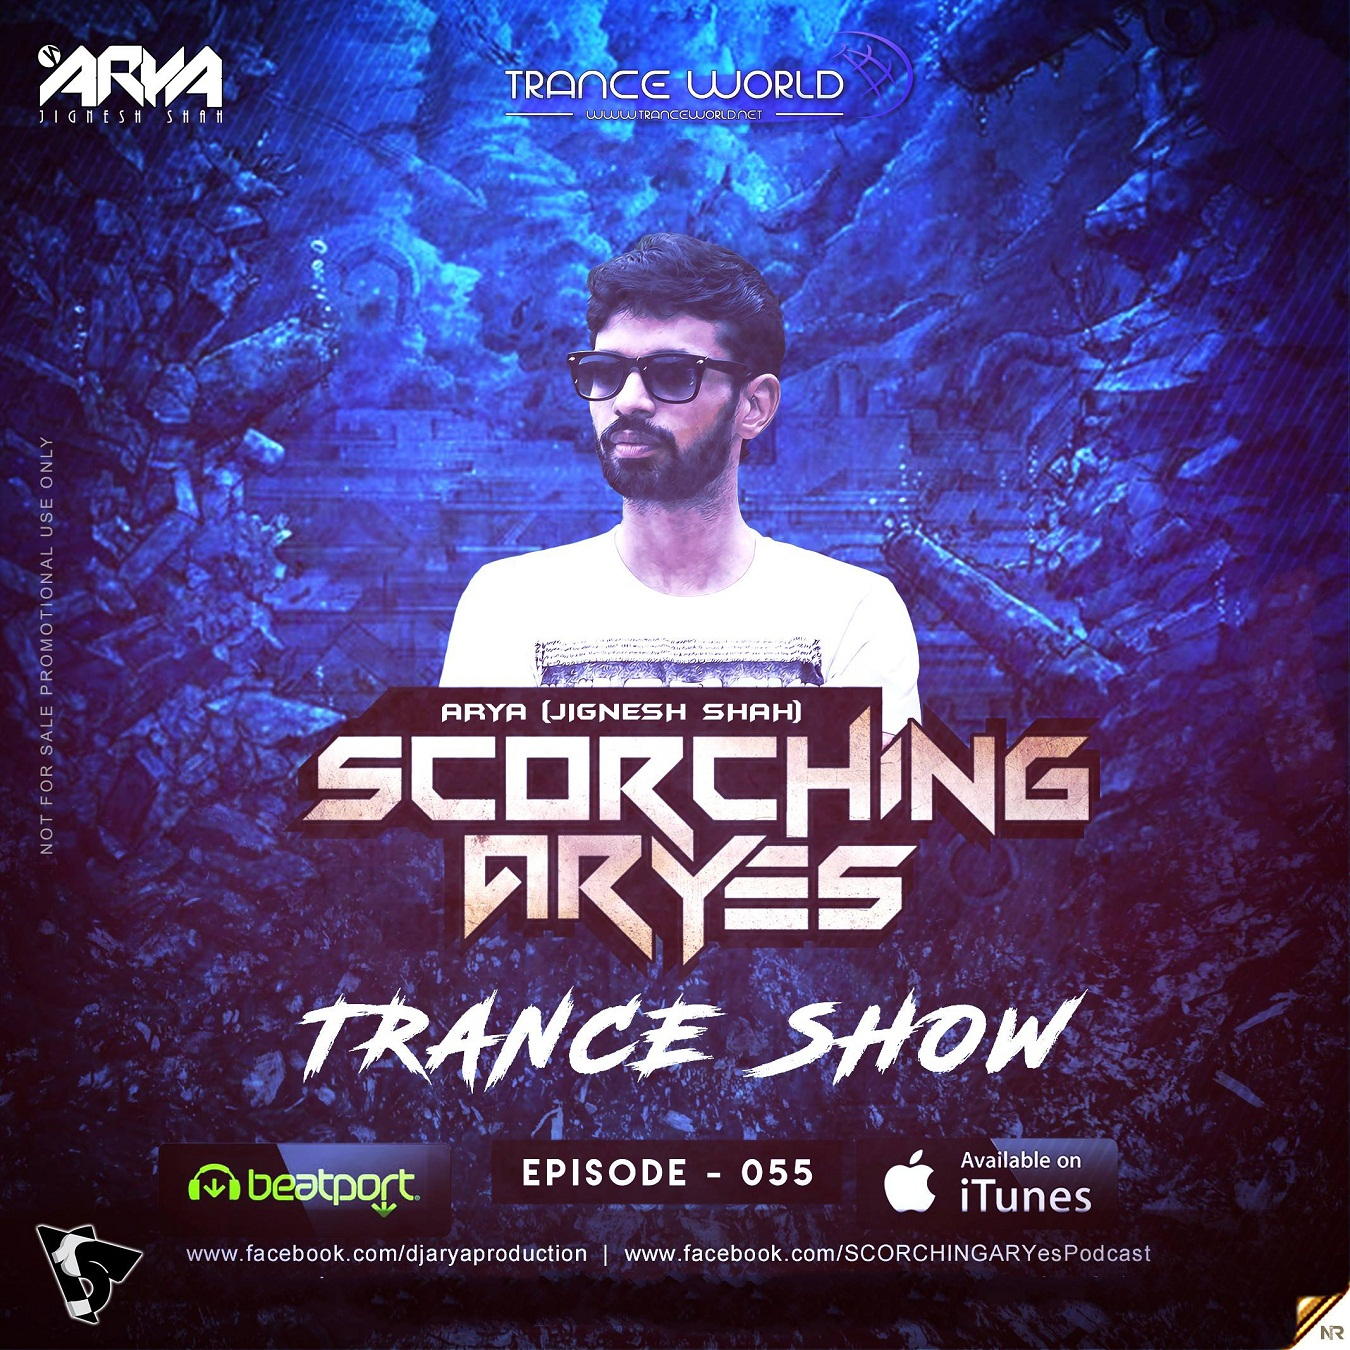 SCORCHING ARYes Episode 055 - ARYA (Jignesh Shah)